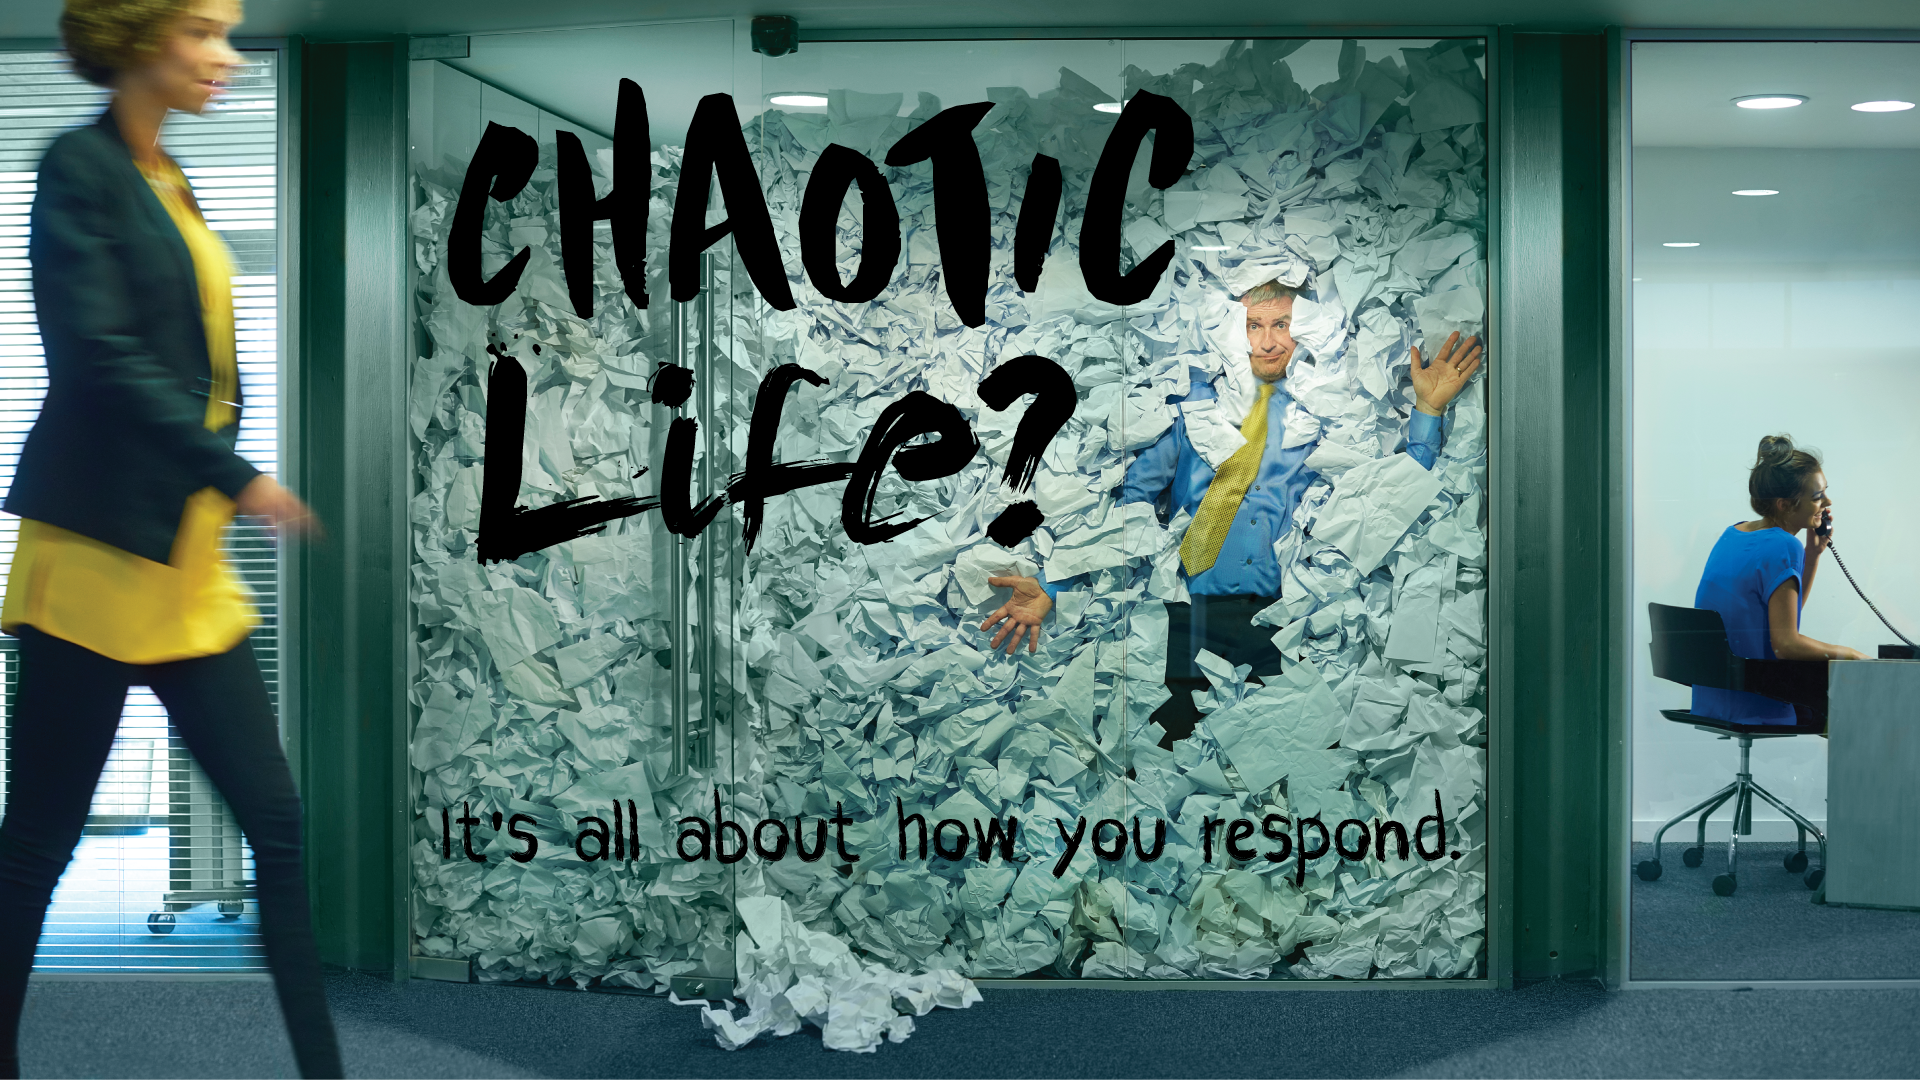 Chaotic-Life-1920x1080